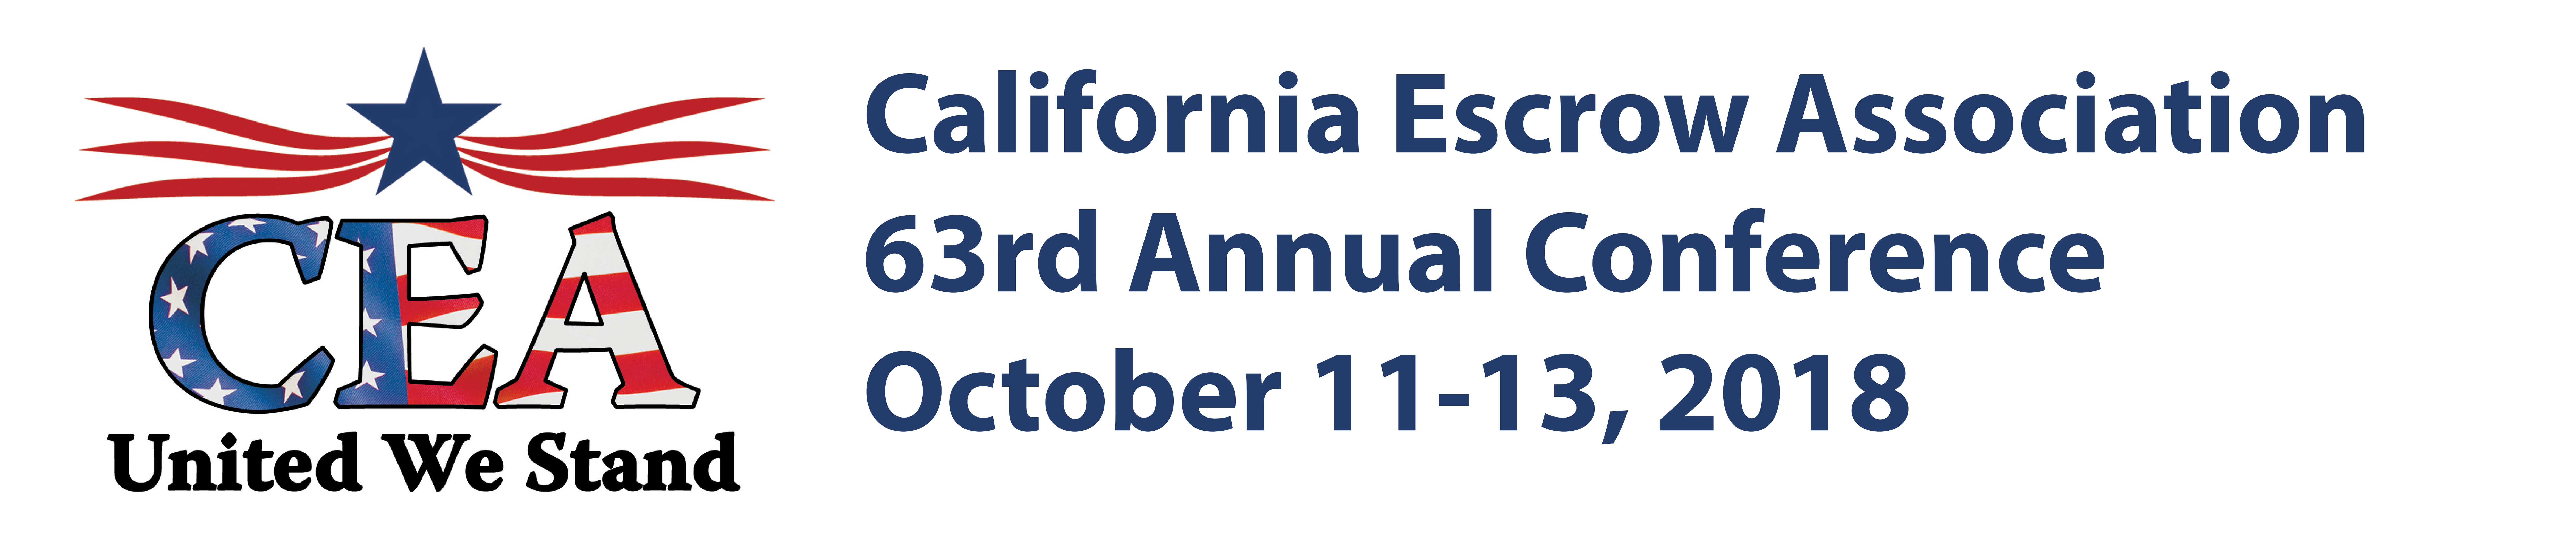 2018 CEA Conference